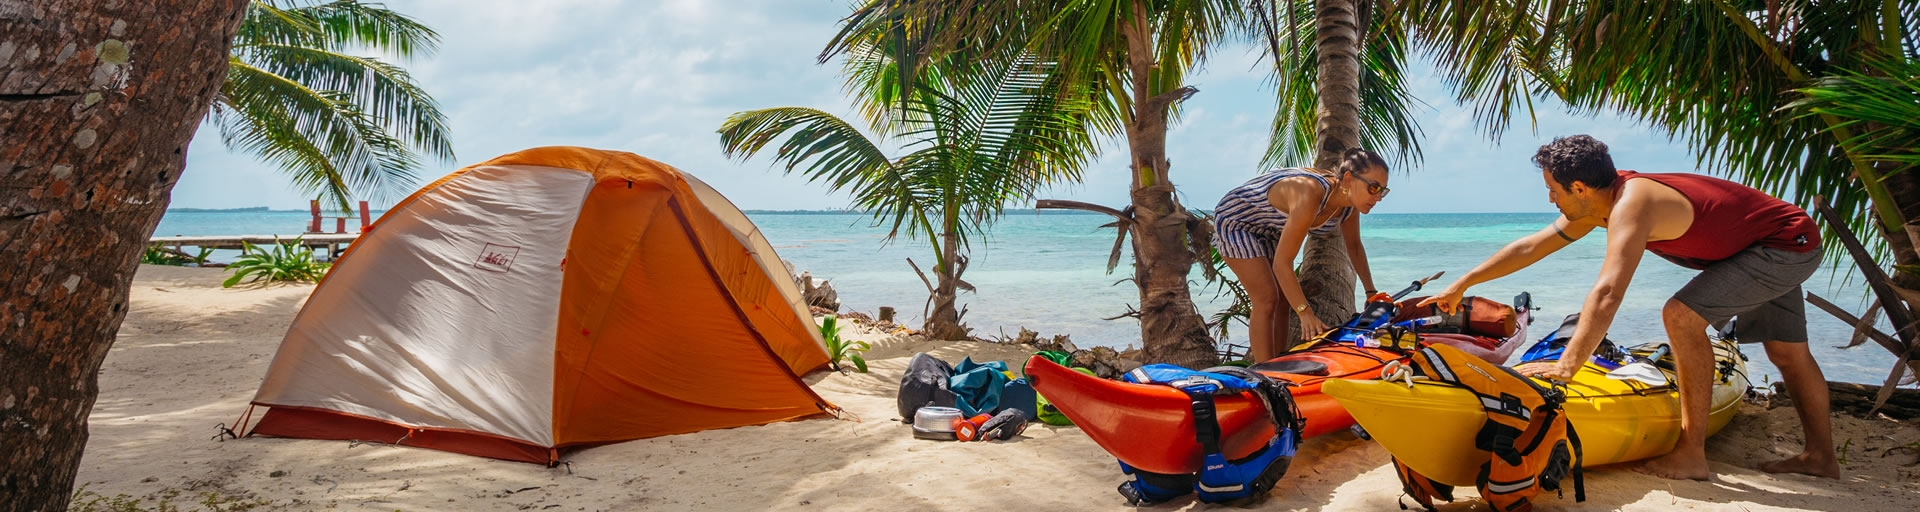 Sea Kayak Camping in Belize